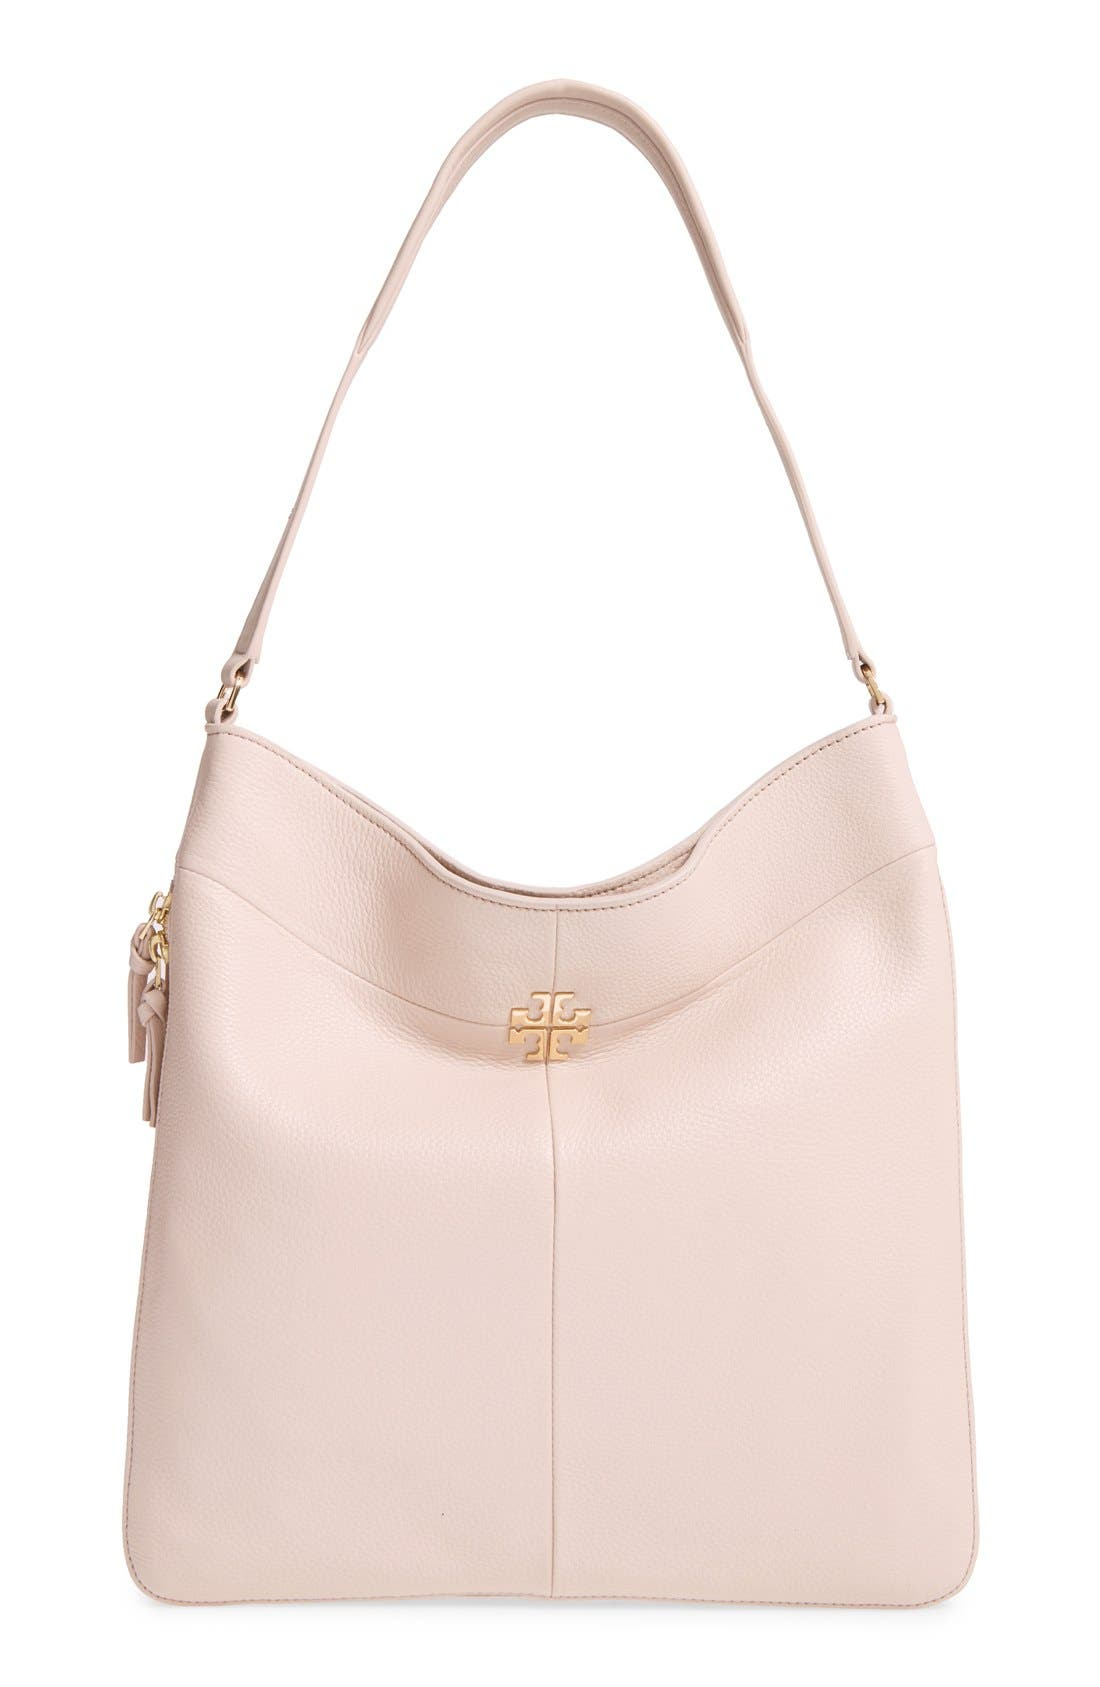 Main Image - Tory Burch Ivy Leather Hobo